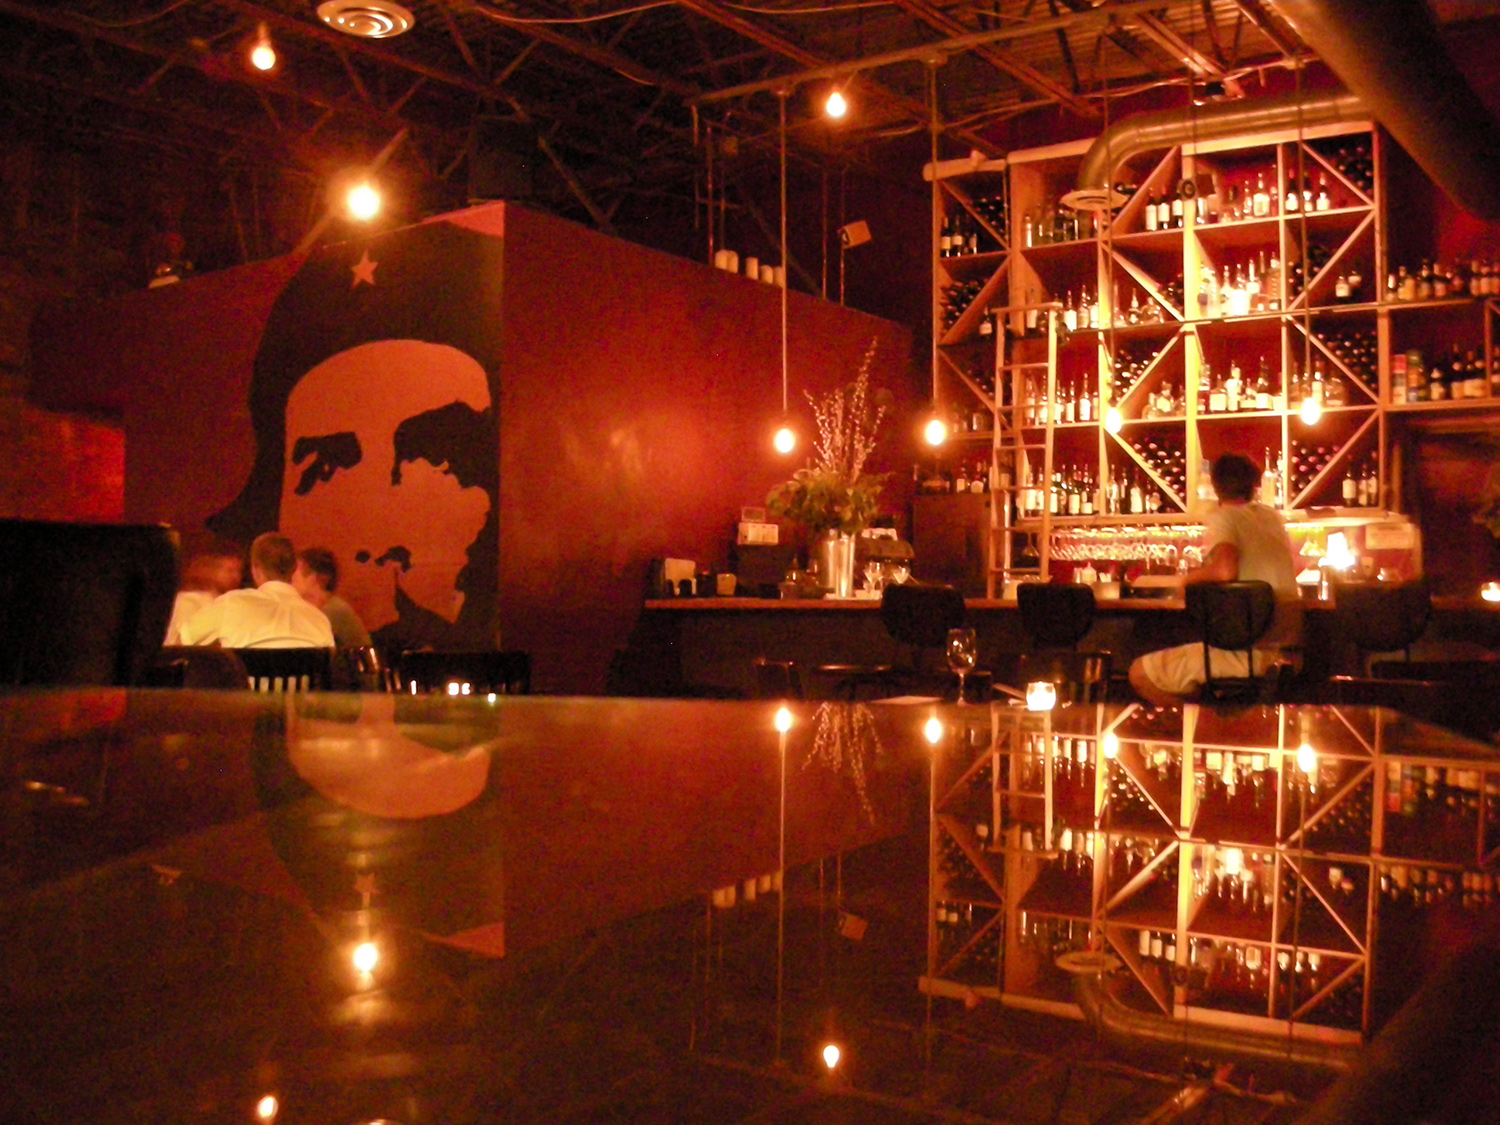 Louise Hannig, owner of the Red Door, asked me for some ideas as she neared completion of her now famous bar. I suggested overwhelming the small space with an oversized graphic of Che. Louise loved it, and a whole identity for the bar was born.